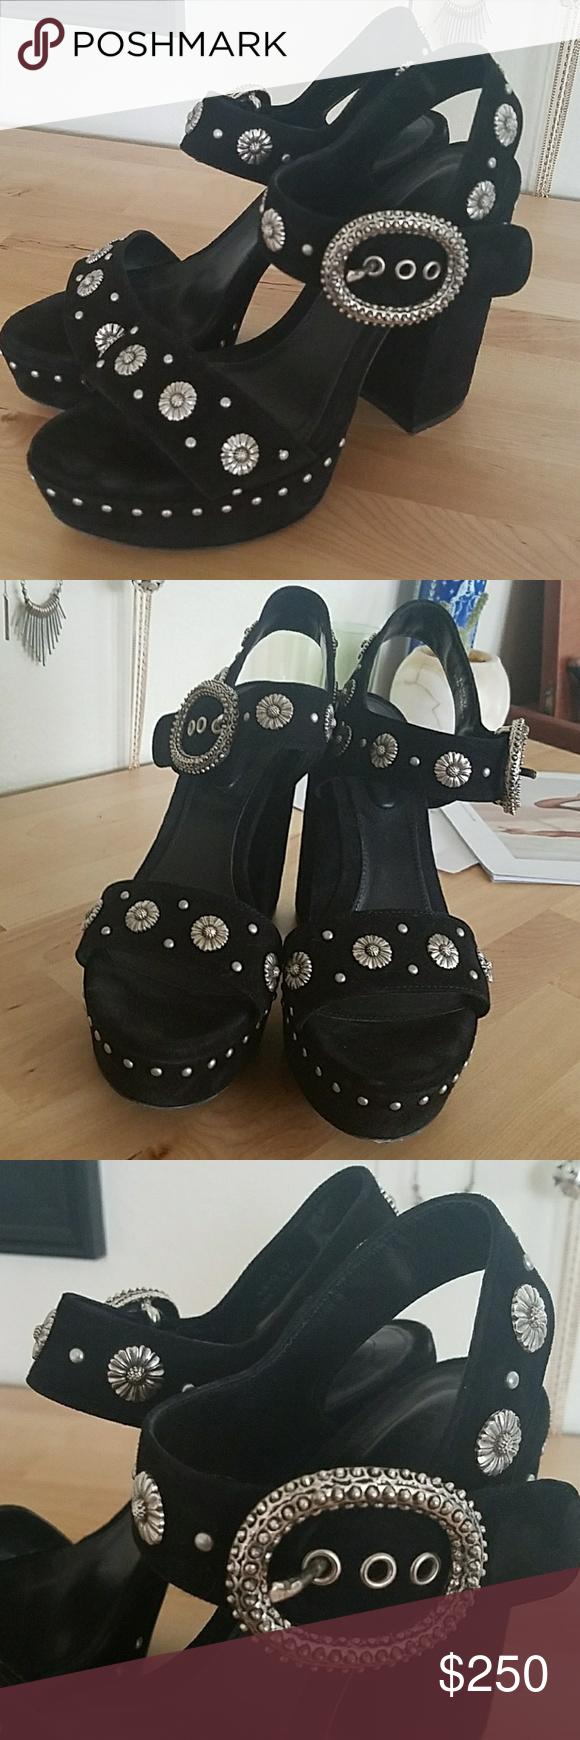 The Kooples heels Super fun and funky platform heels by The Kooples. Daisy hardware and fun metal buckles and nailhead detailing. Love these! Worn only a couple of times. Comes with box and dustbag. The Kooples Shoes Platforms